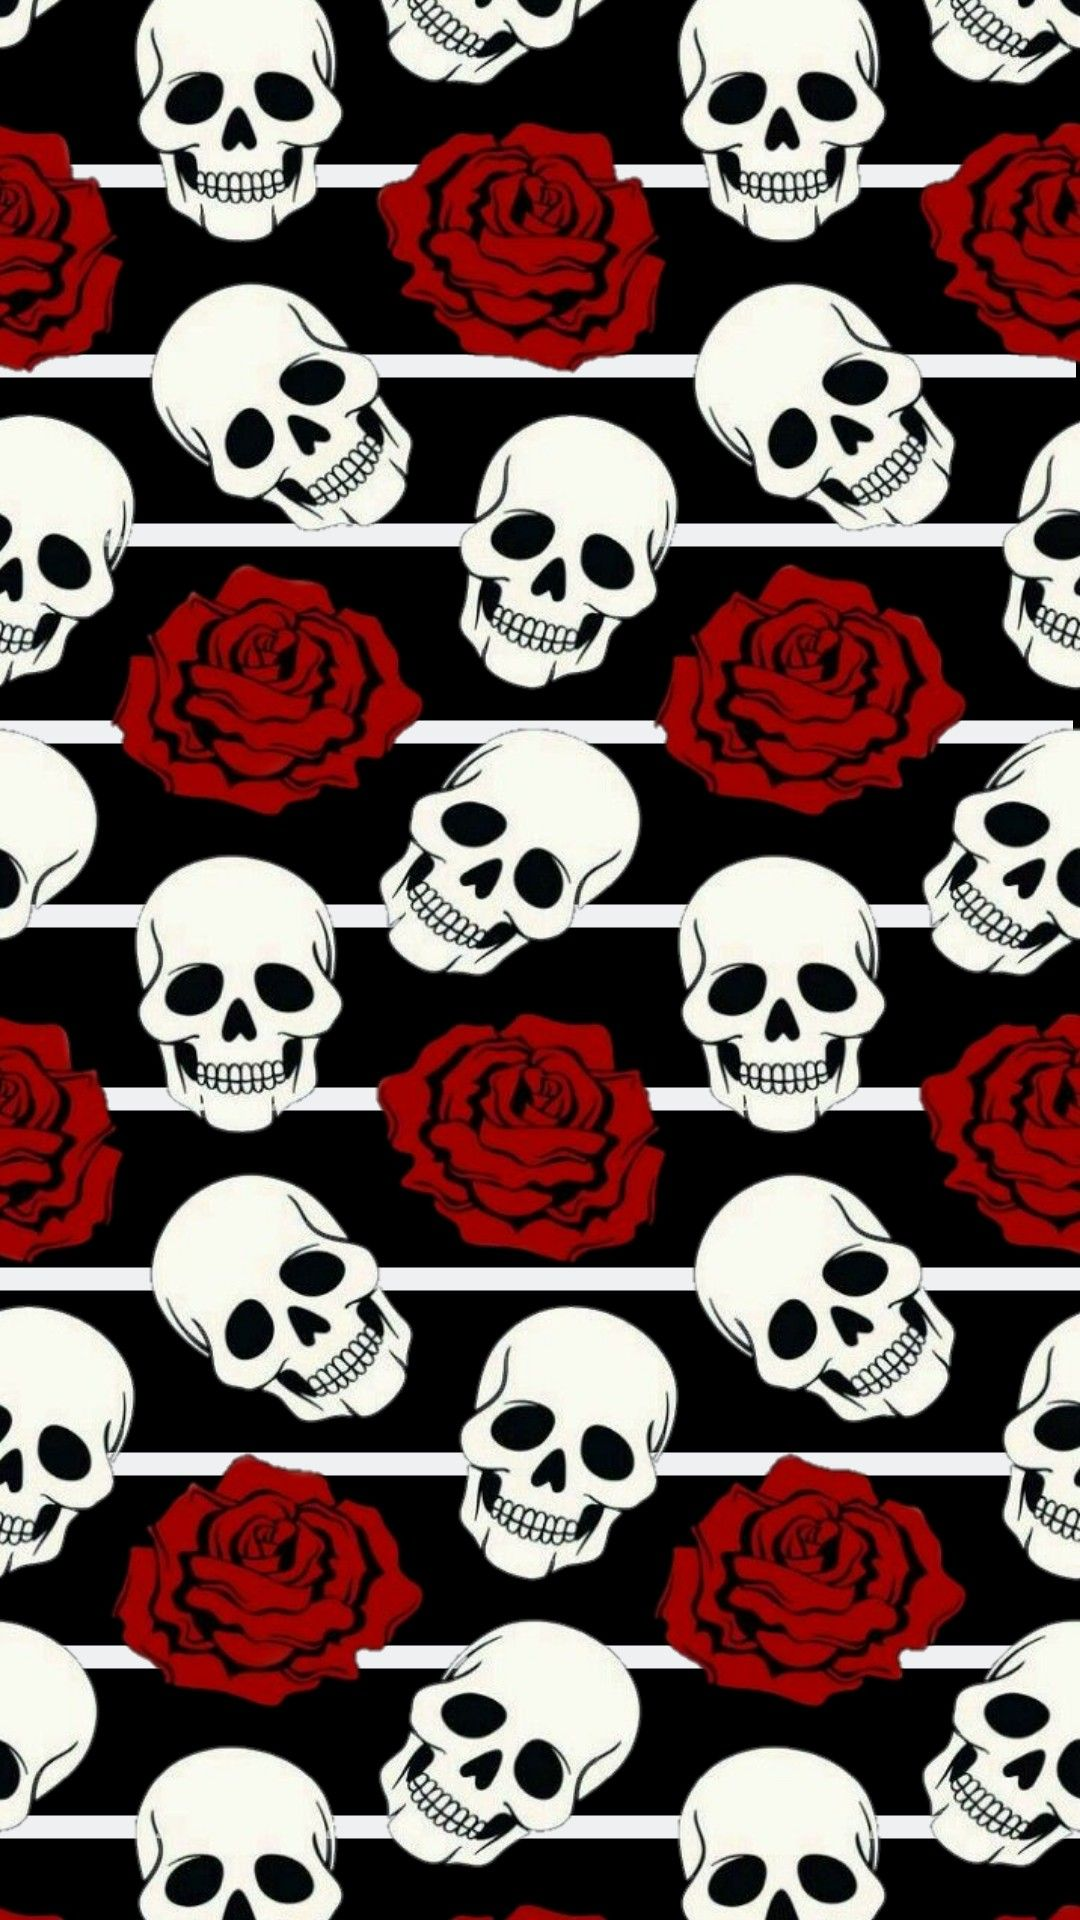 Pin By Yazmin Lucero On Marcajbasic Emo Wallpaper Skull Wallpaper Skull Wallpapers